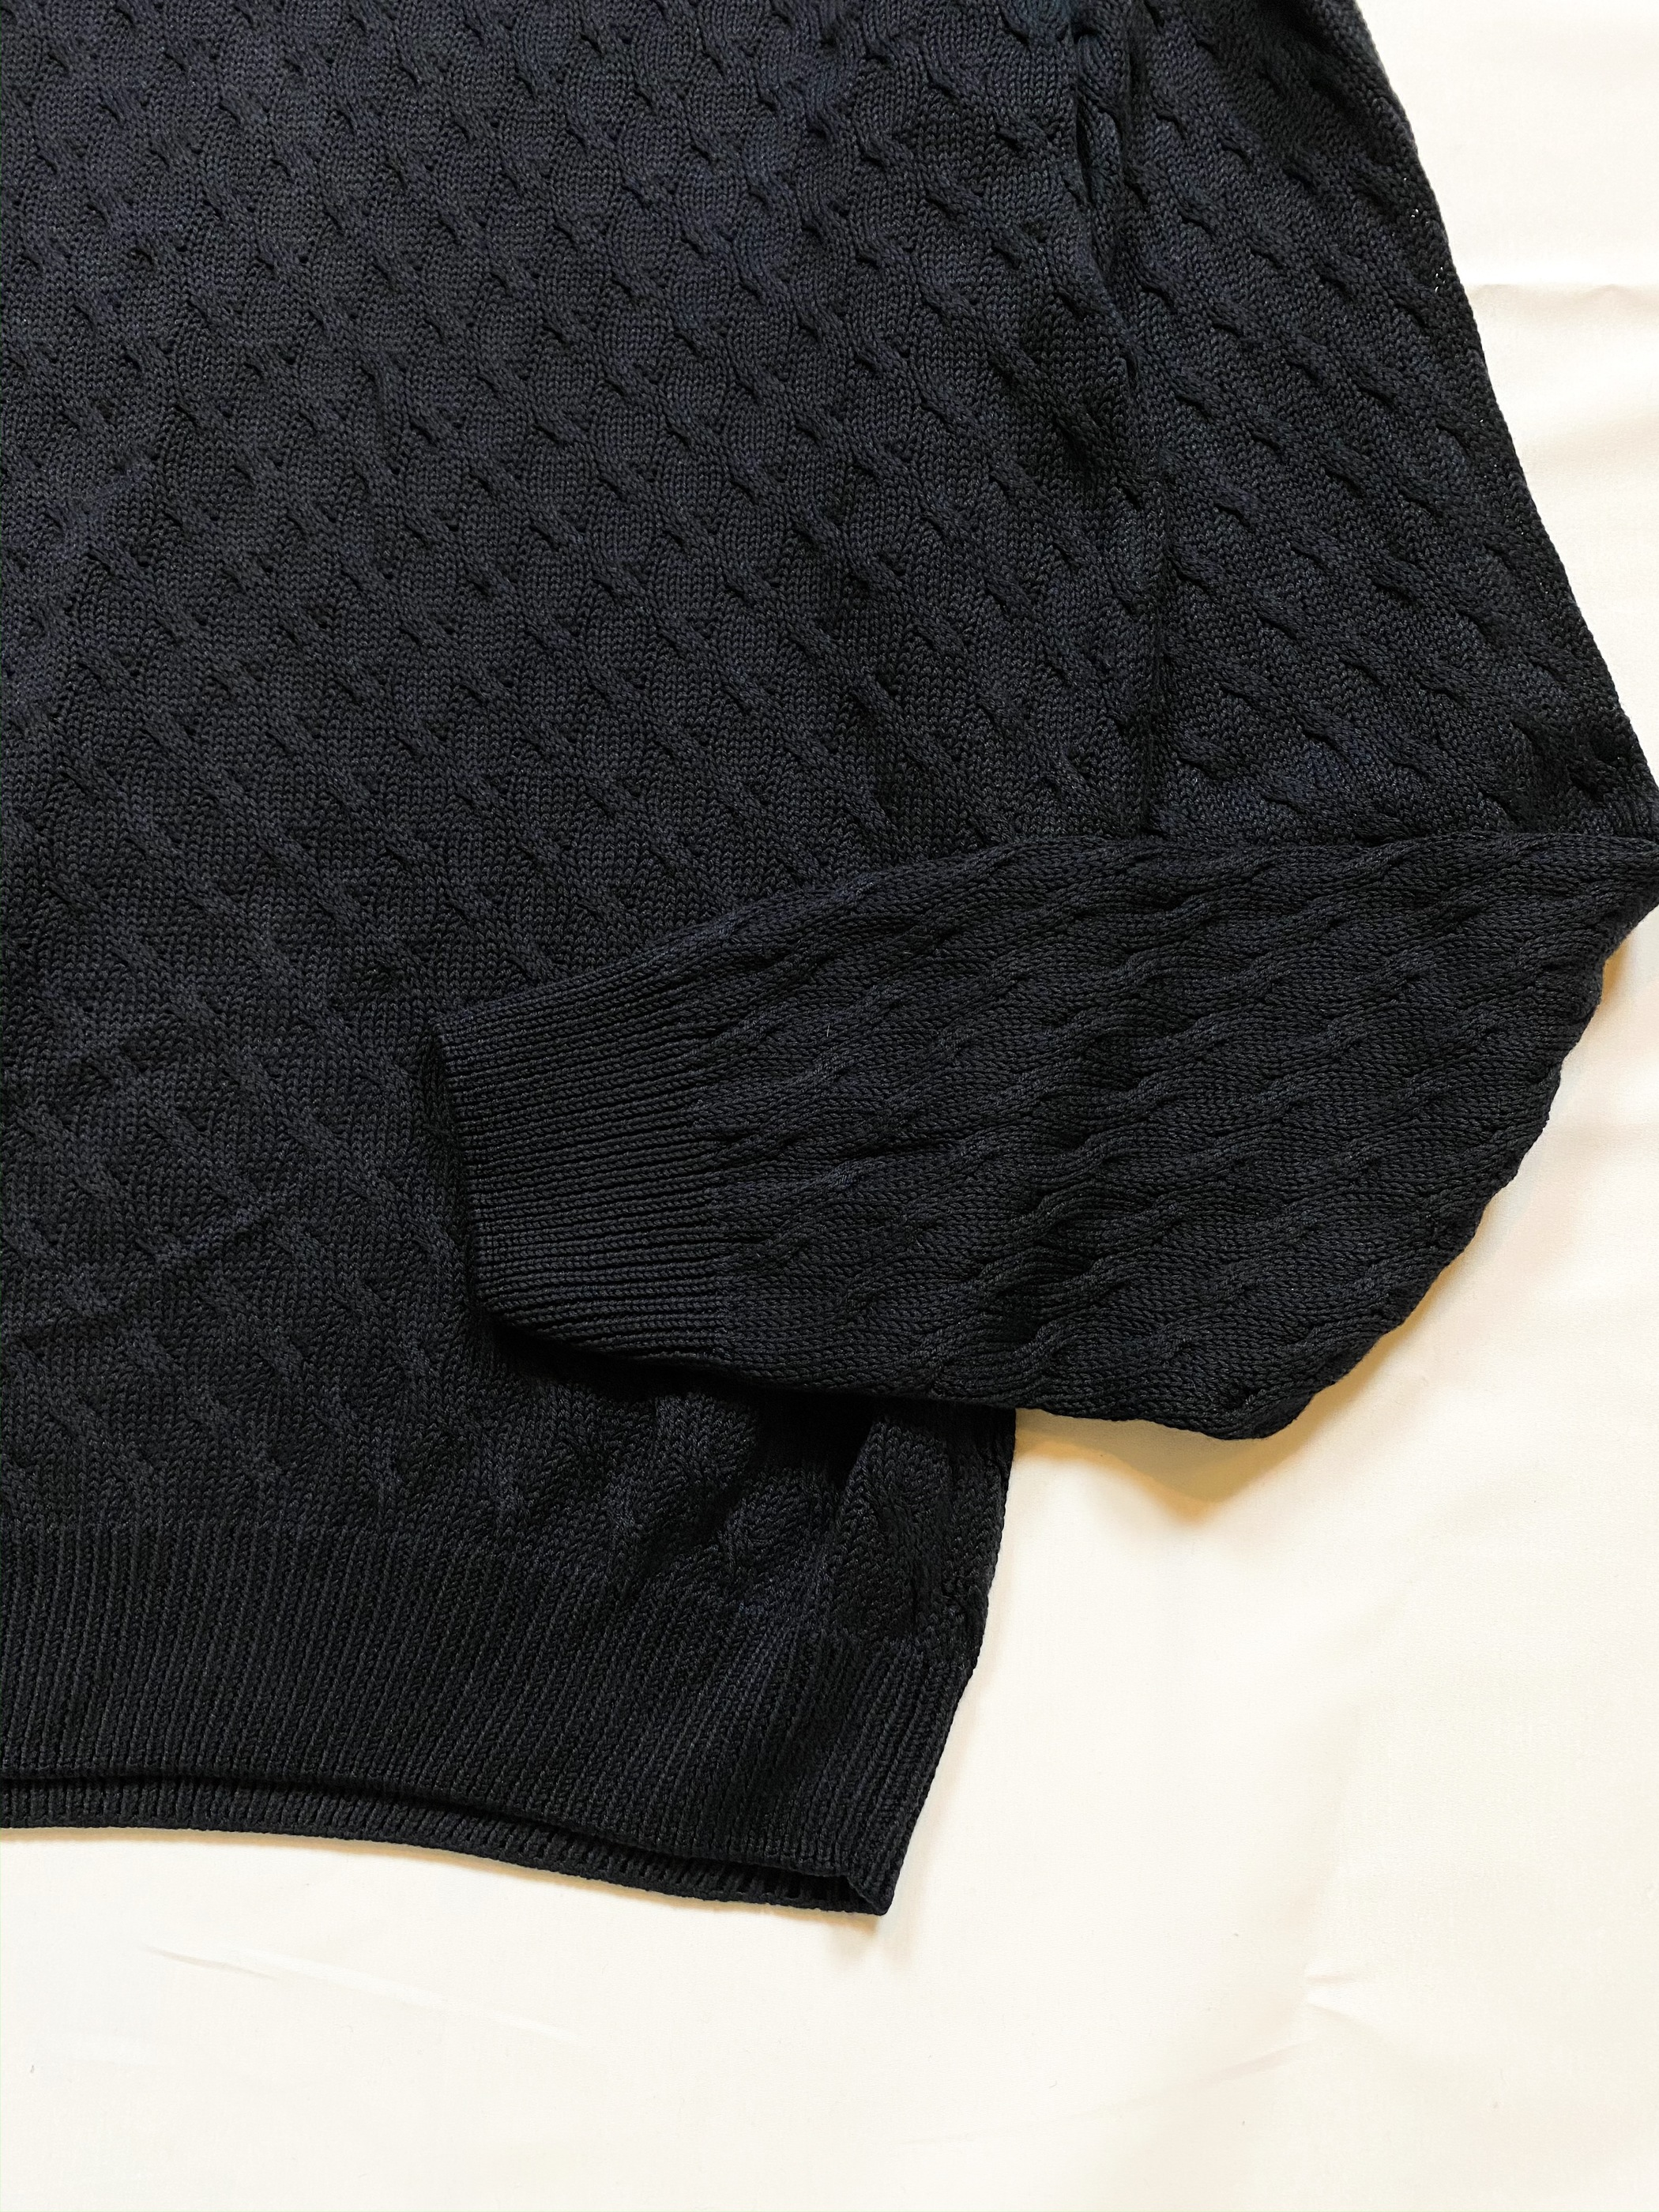 SAKS FIFTH AVENUE silk cable knit sweater